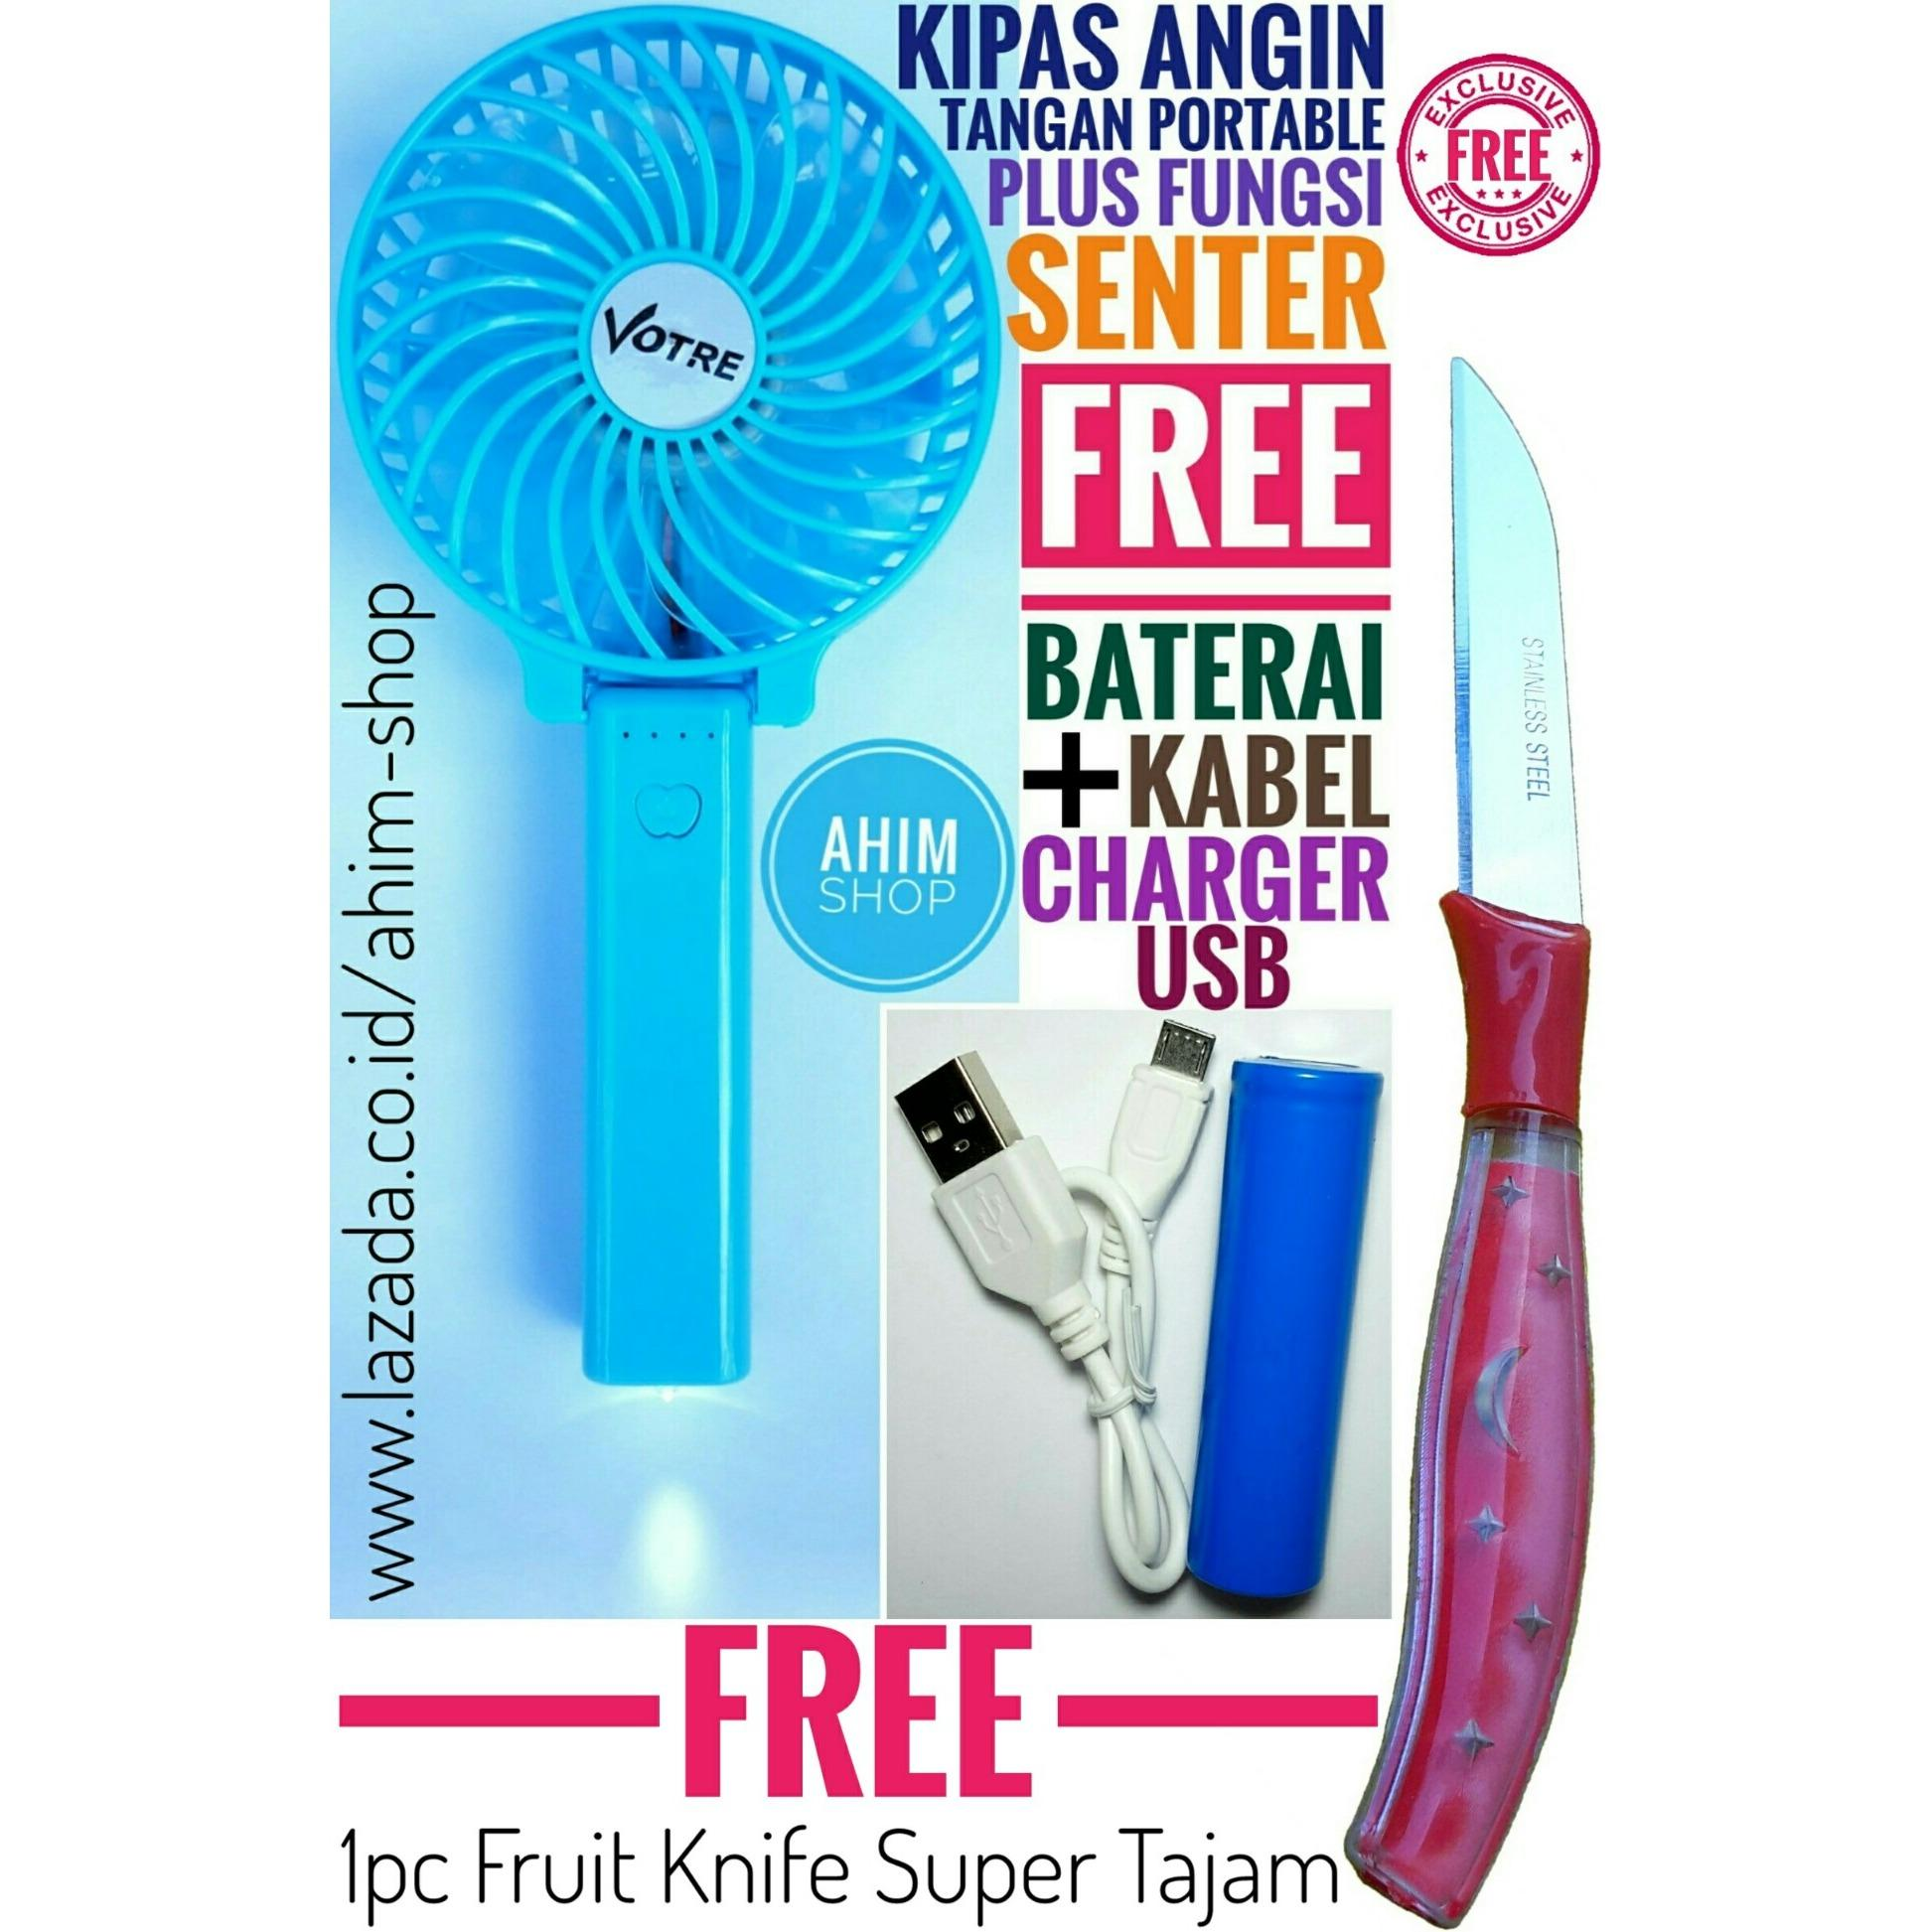 Kipas Angin Tangan BIRU Lipat Portable 4.5W USB Fan Mini Stand PLUS Fungsi Senter FREE Kabel Charger + Baterai PLUS 1pc FRUIT KNIFE Star Moon STAINLESS STEEL (Warna Acak)